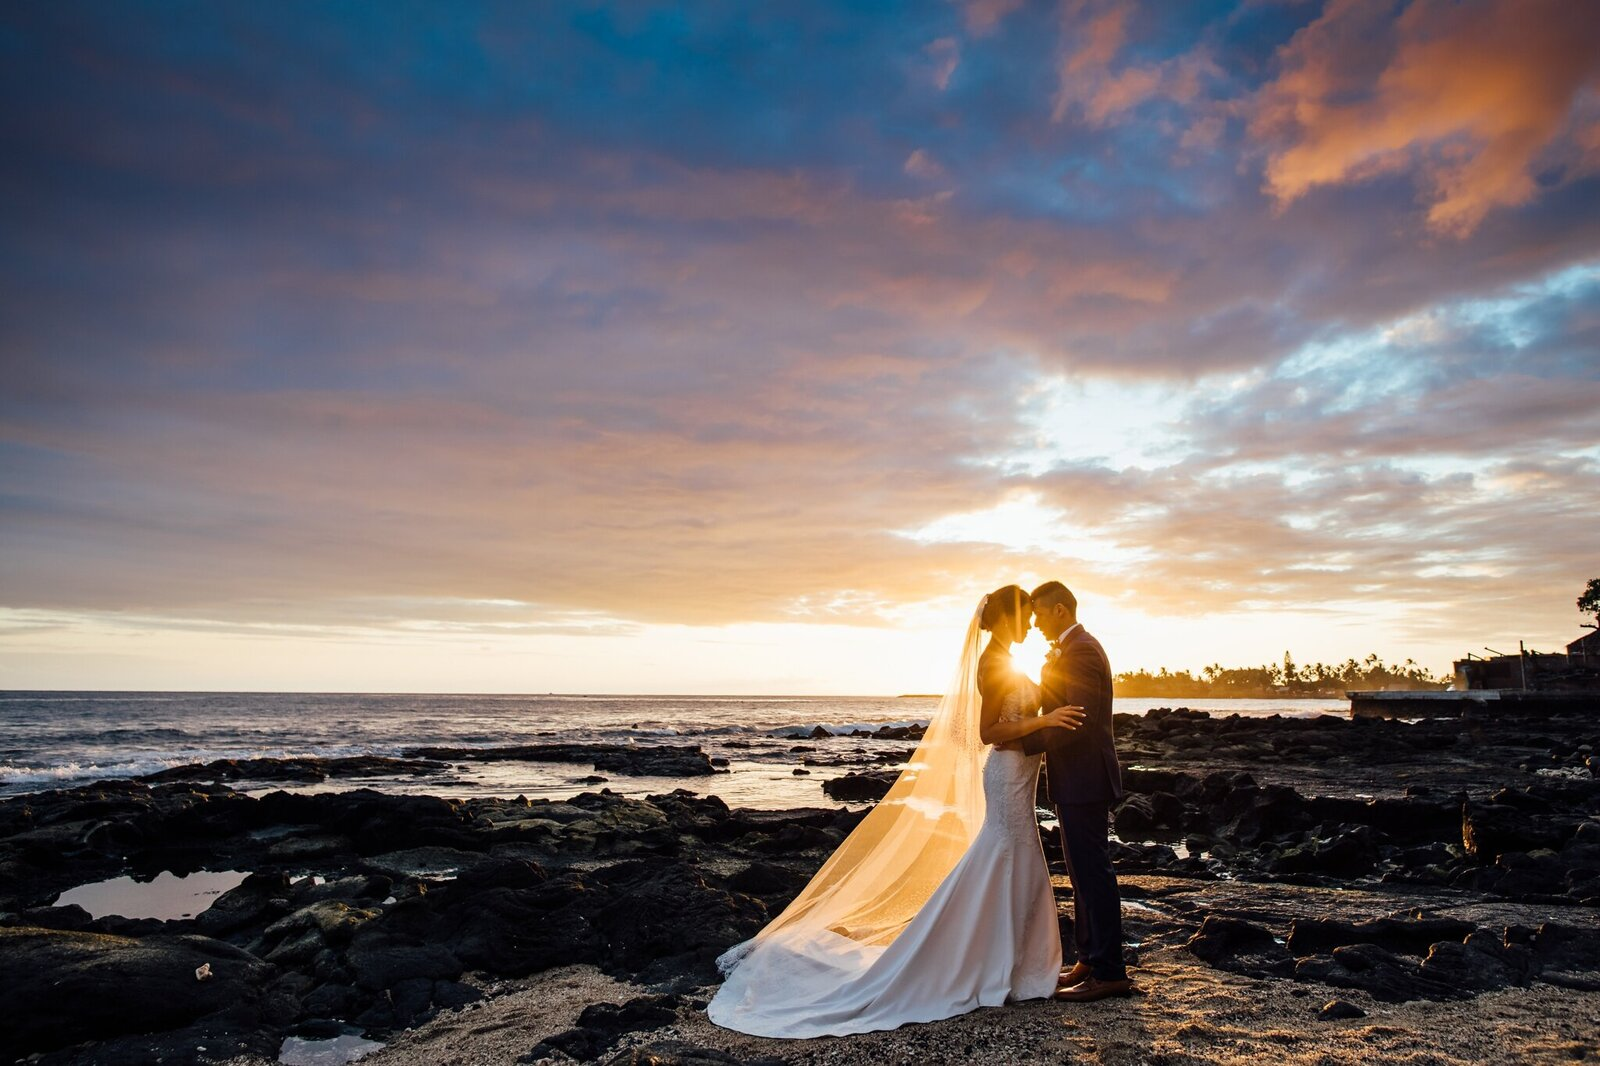 vibrant sunset colors on wedding day